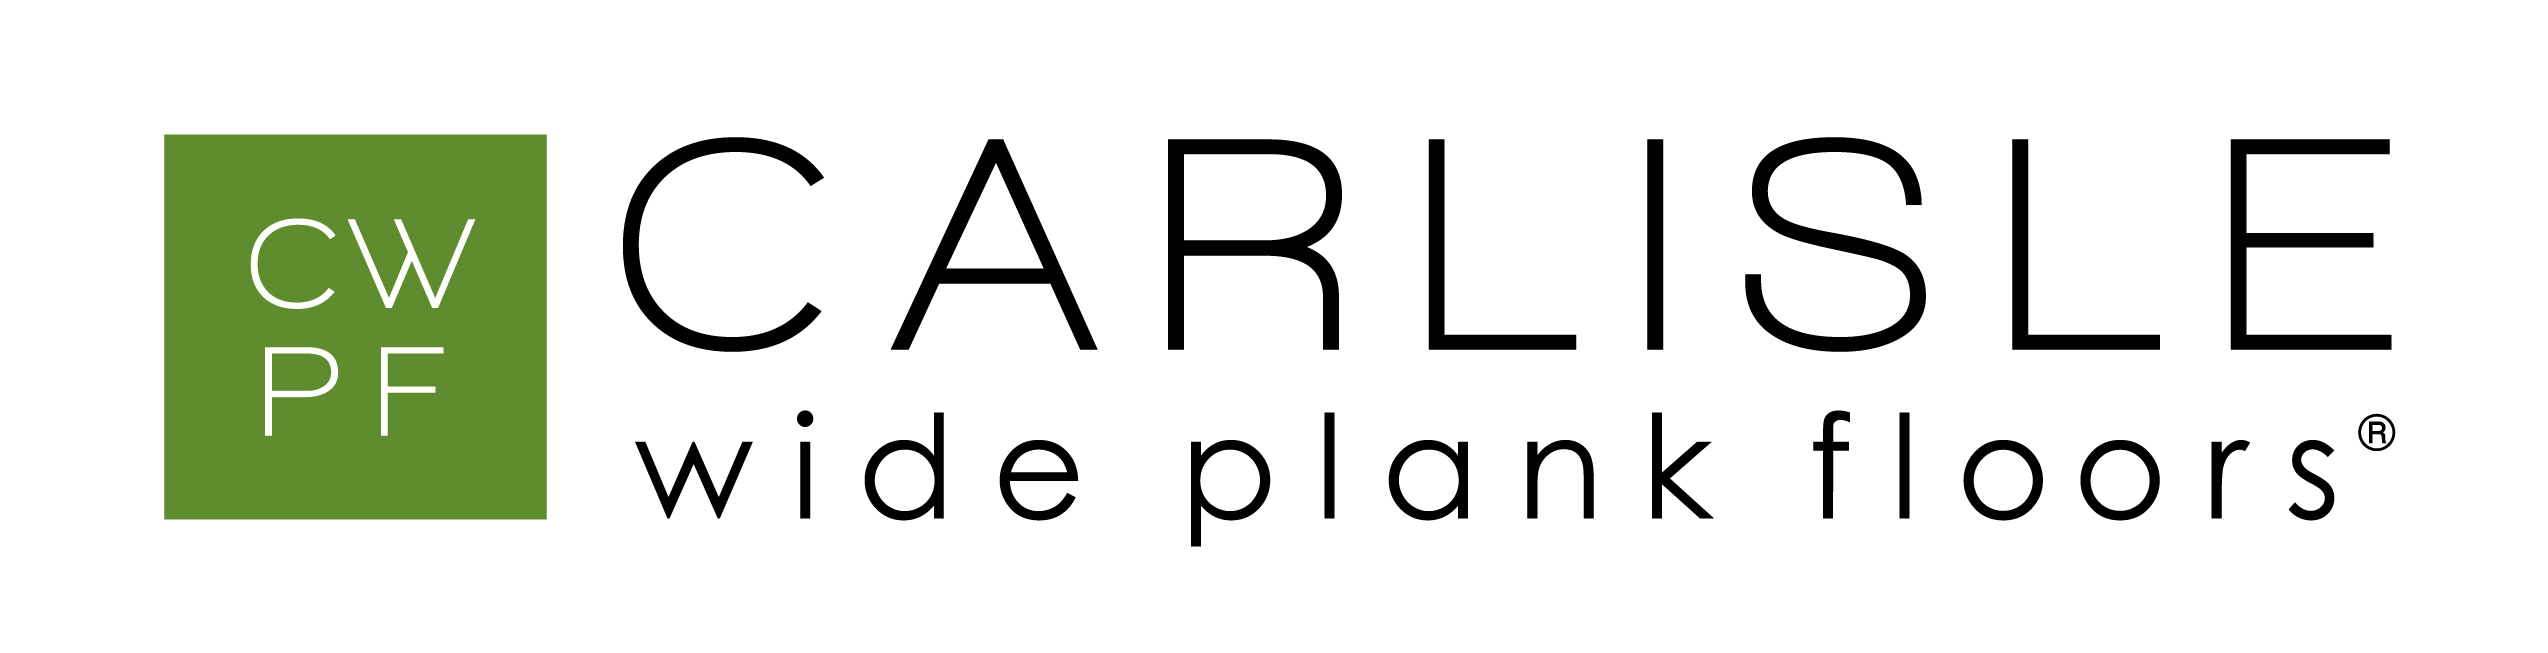 2019 Home Tour- Carlisle Wide Plank Floors logo